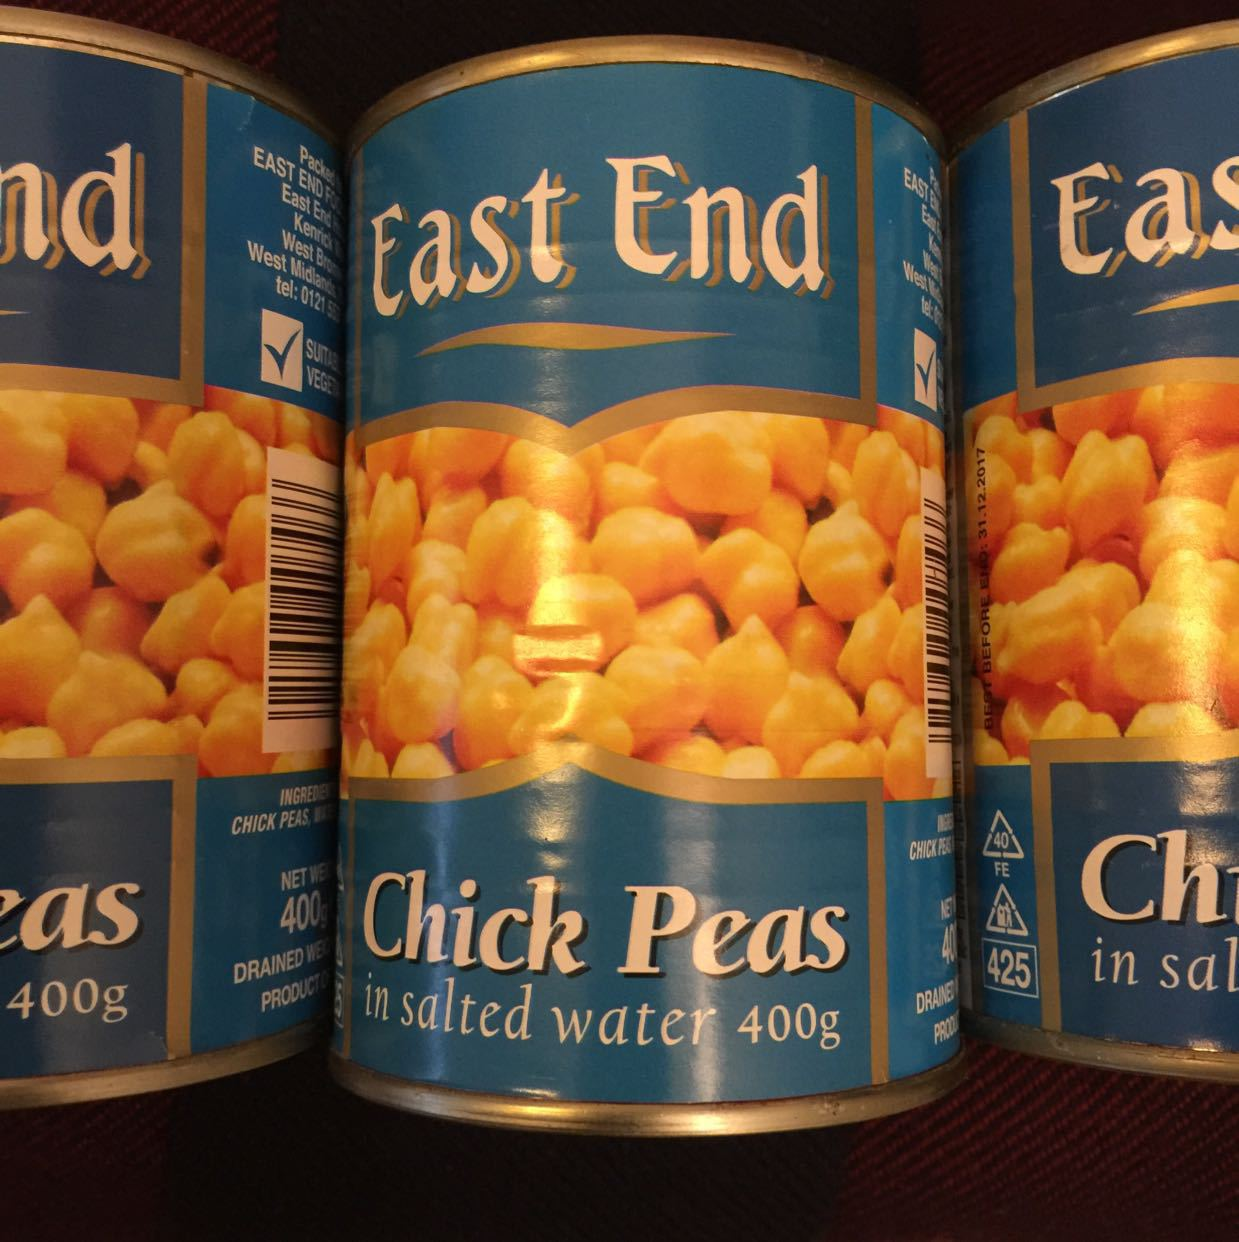 Chickpeas 3 cans